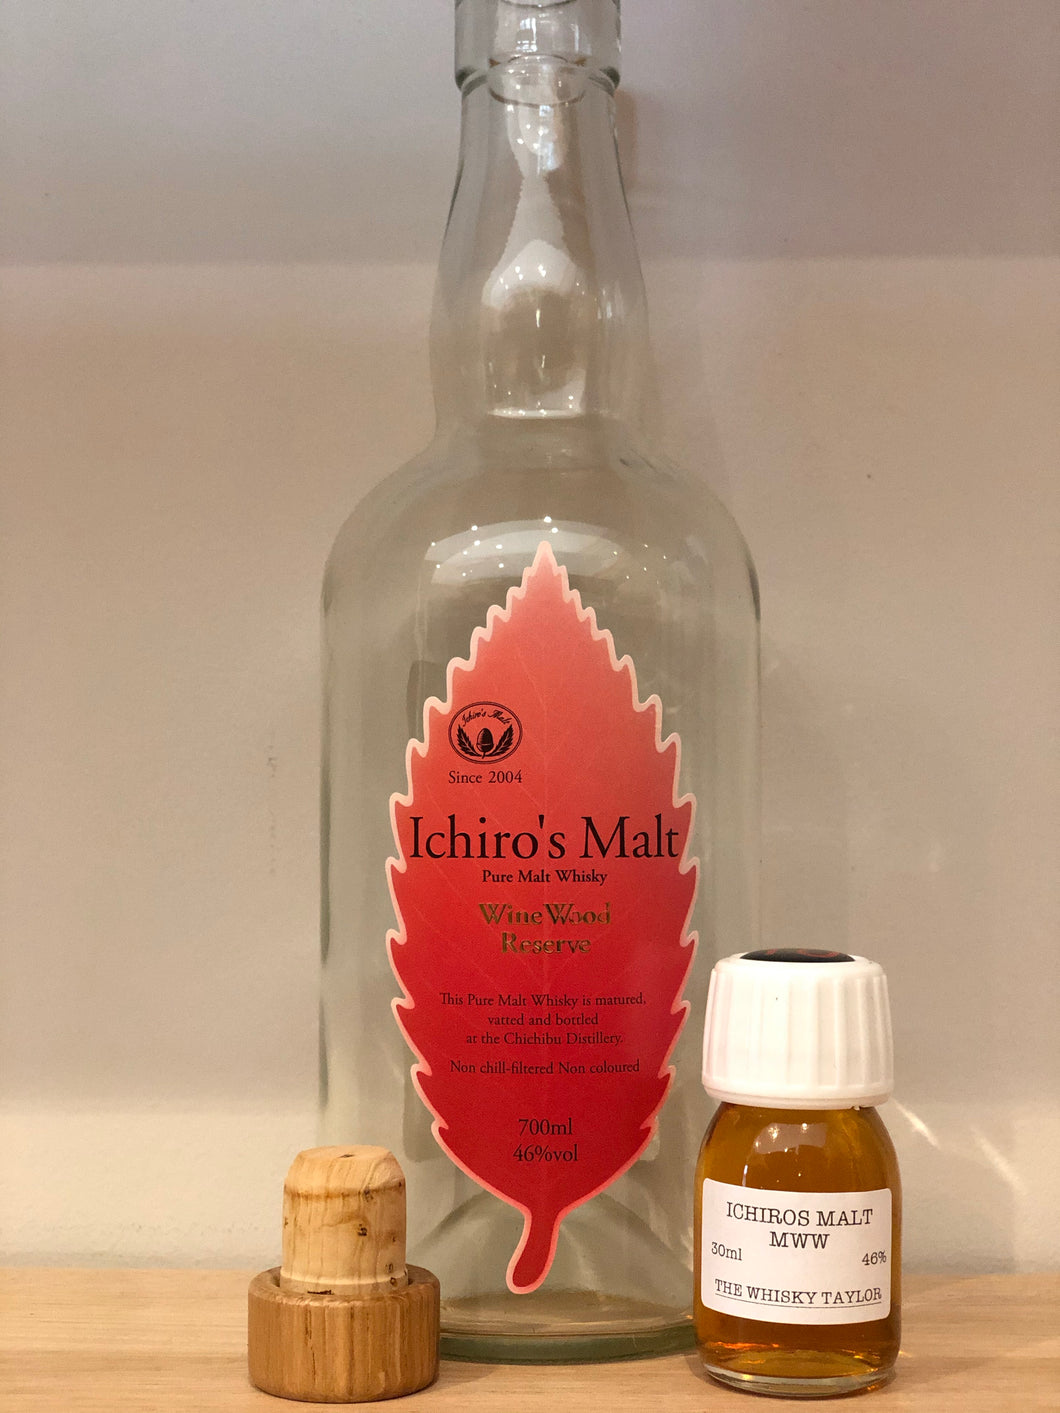 (30ml Bottle) Ichiros Wine Wood Reserve